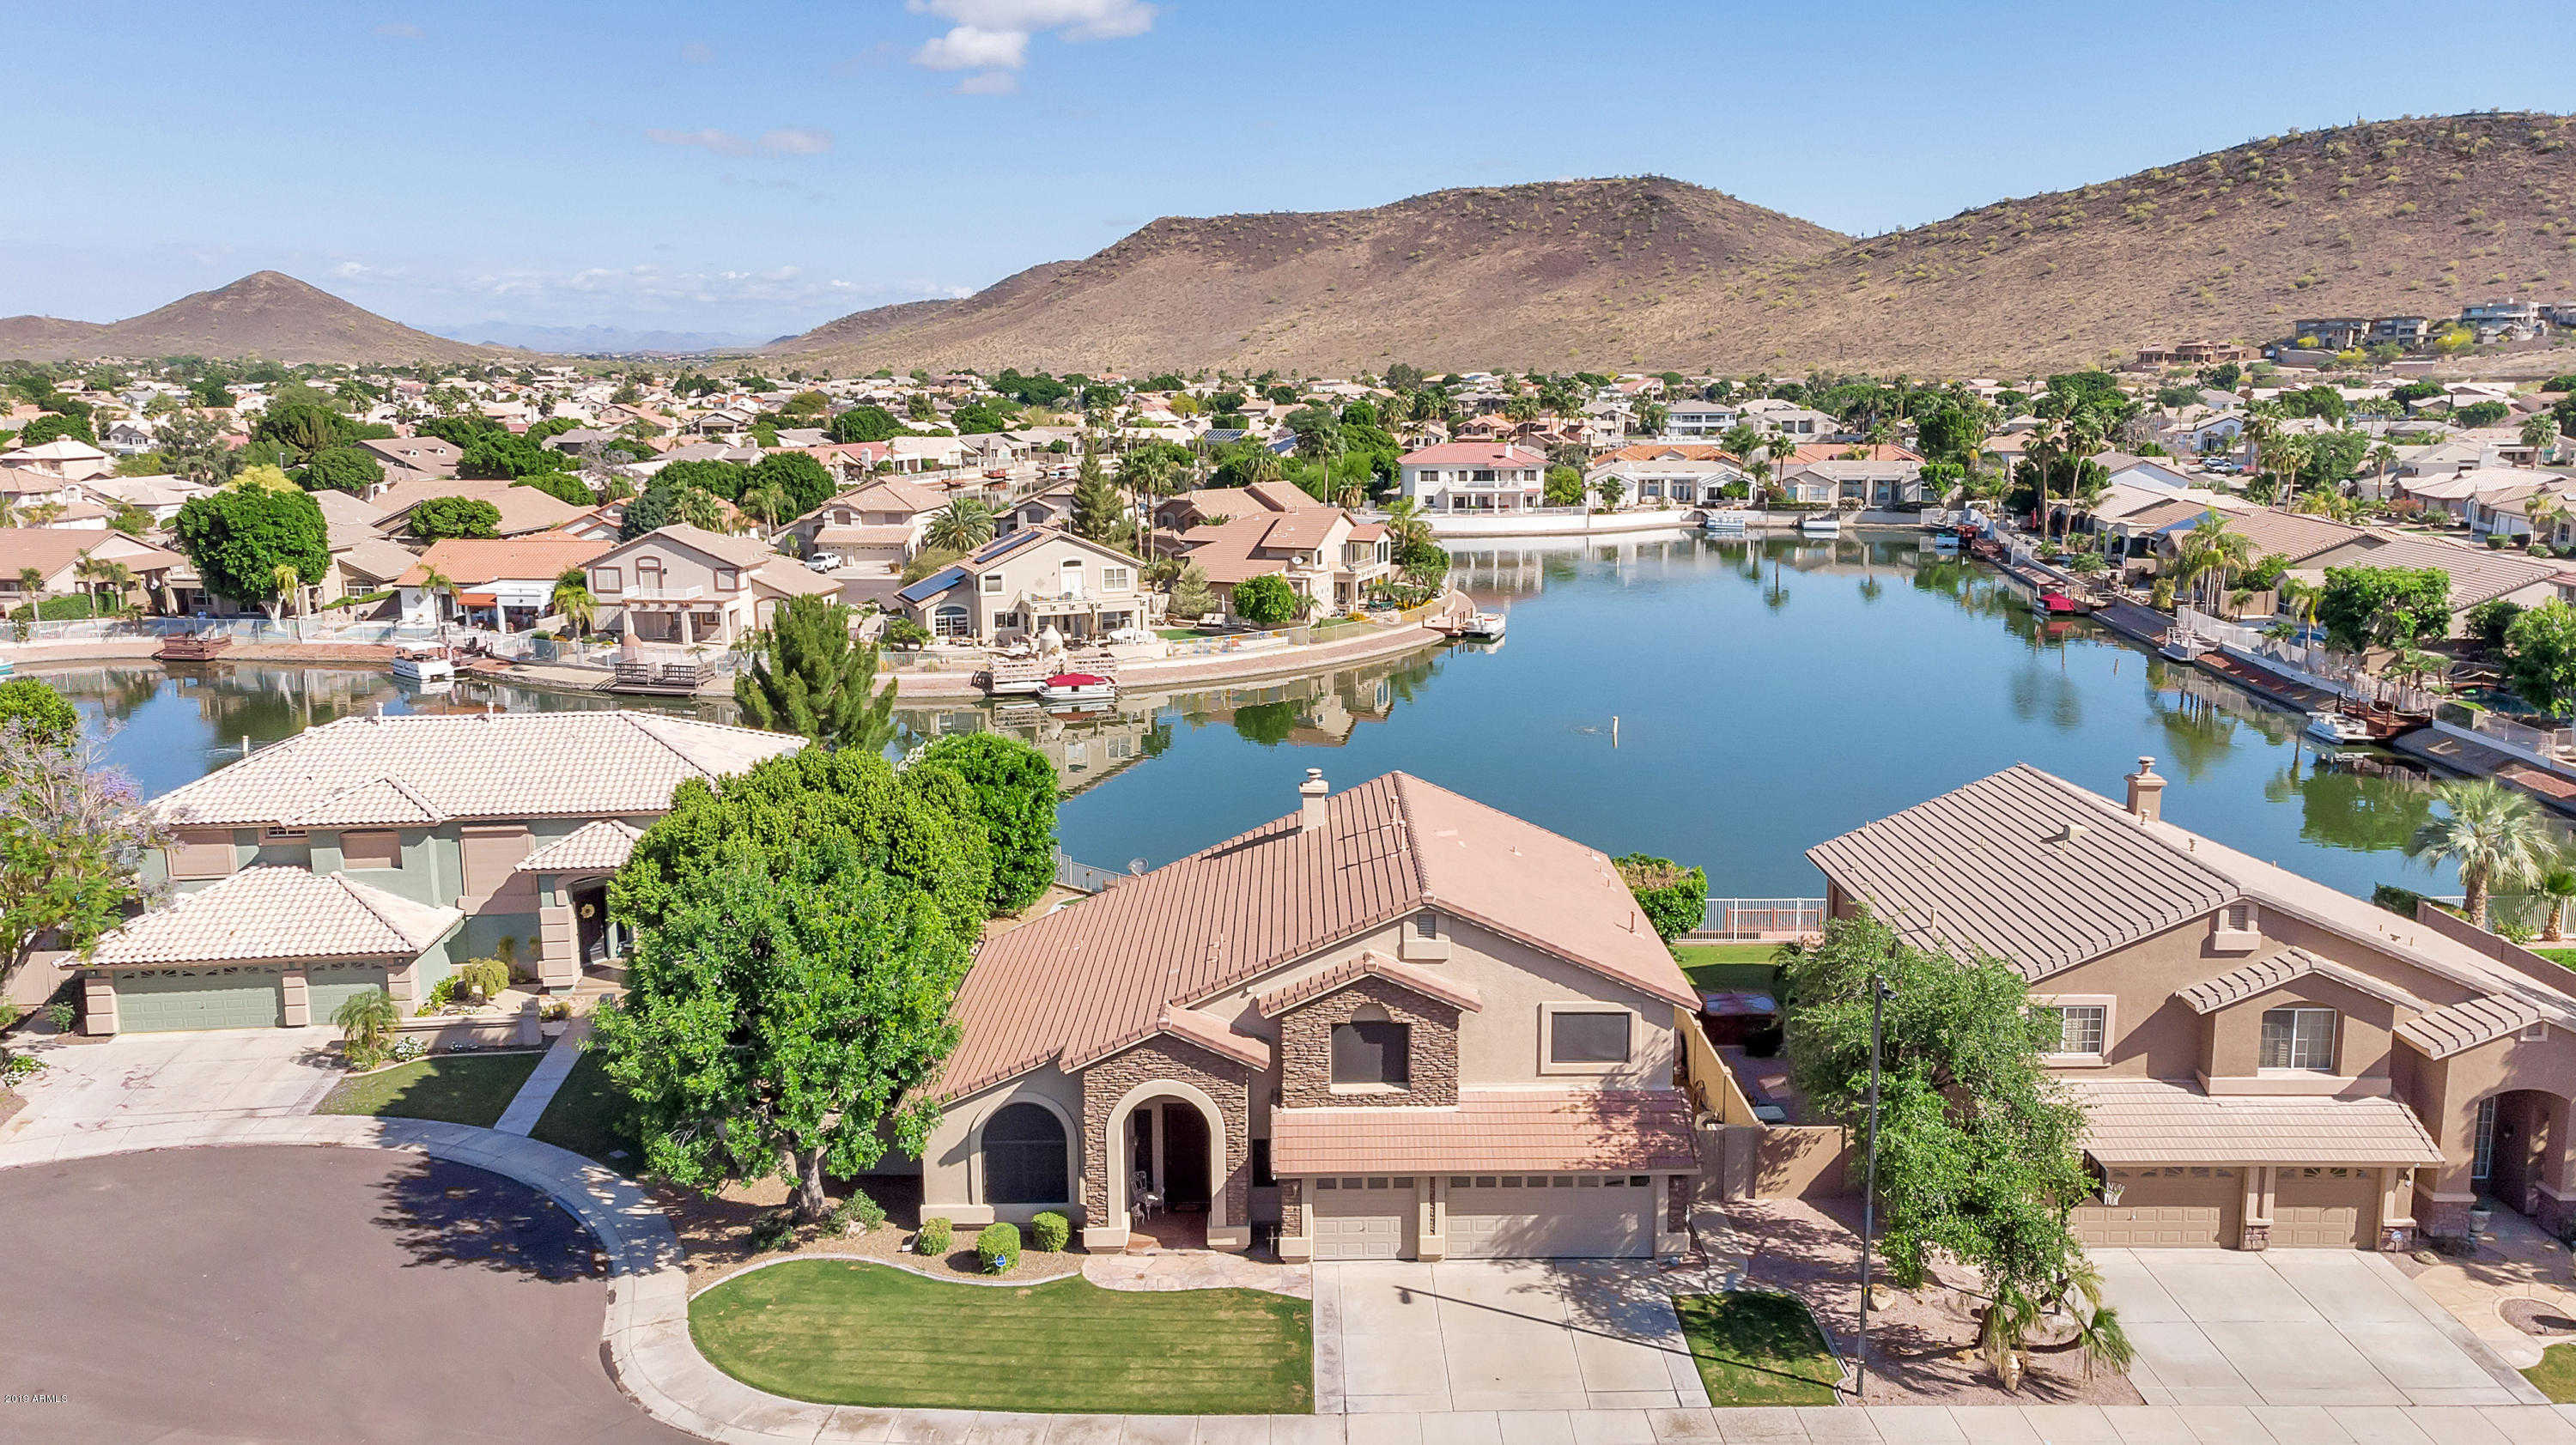 $599,000 - 4Br/3Ba - Home for Sale in Arrowhead Lakes, Glendale